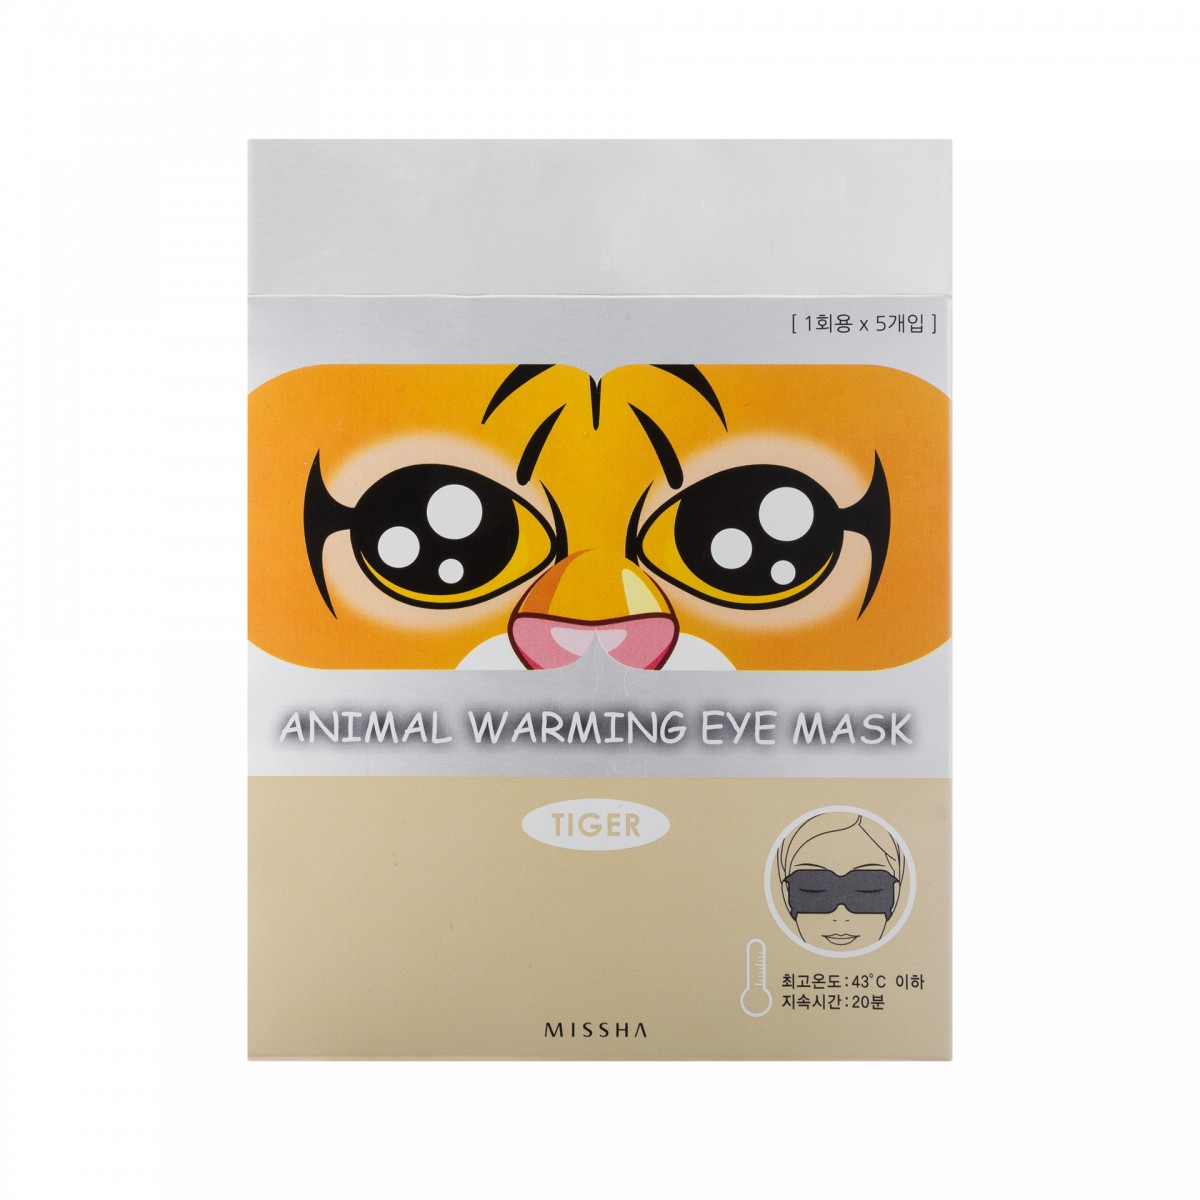 Animal Warming Eye Mask_Tiger (Rose Fragrance) - Маска для г